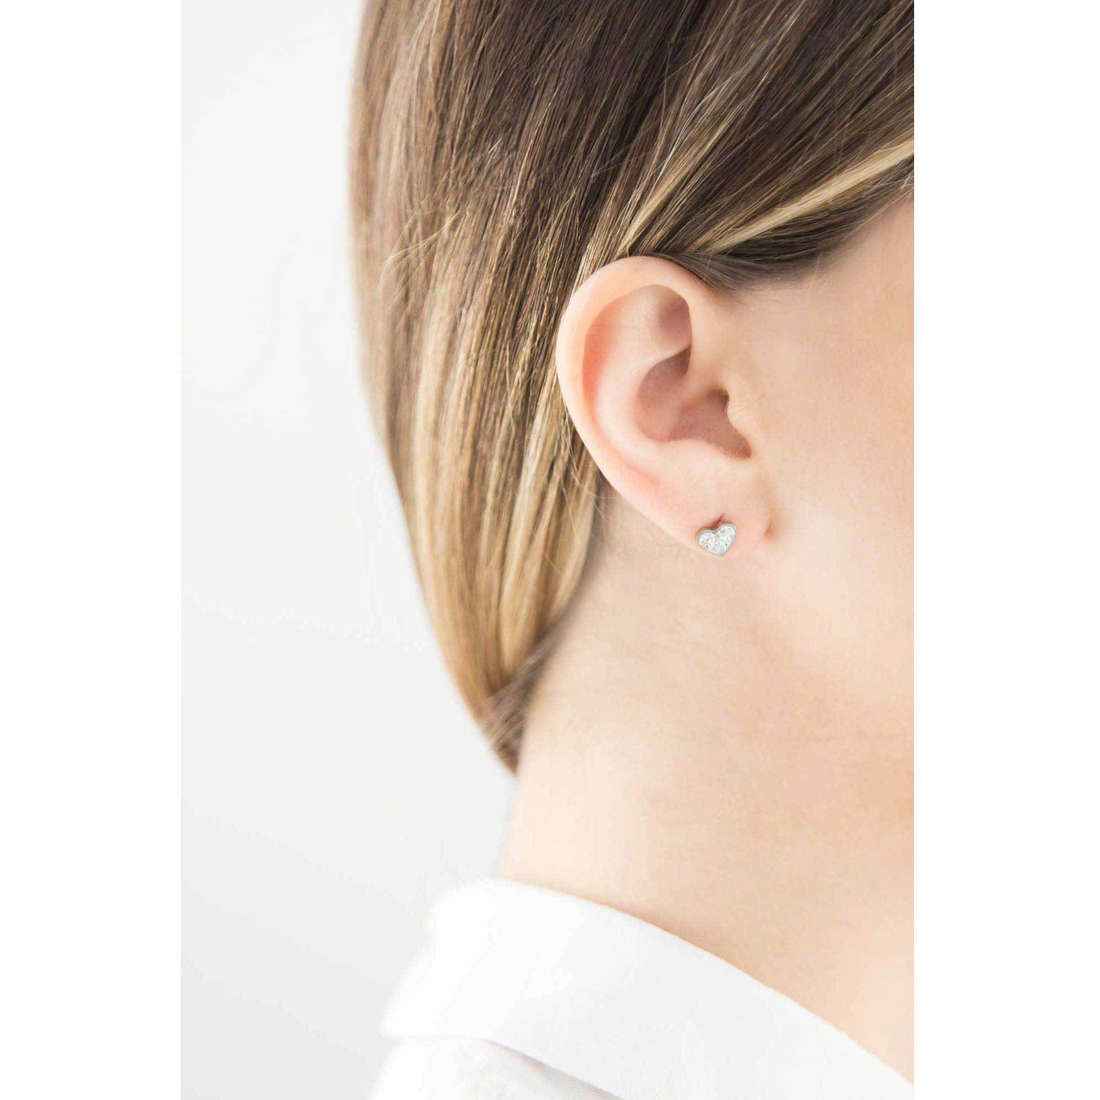 Marlù boucles d'oreille Time To femme 18OR027 indosso